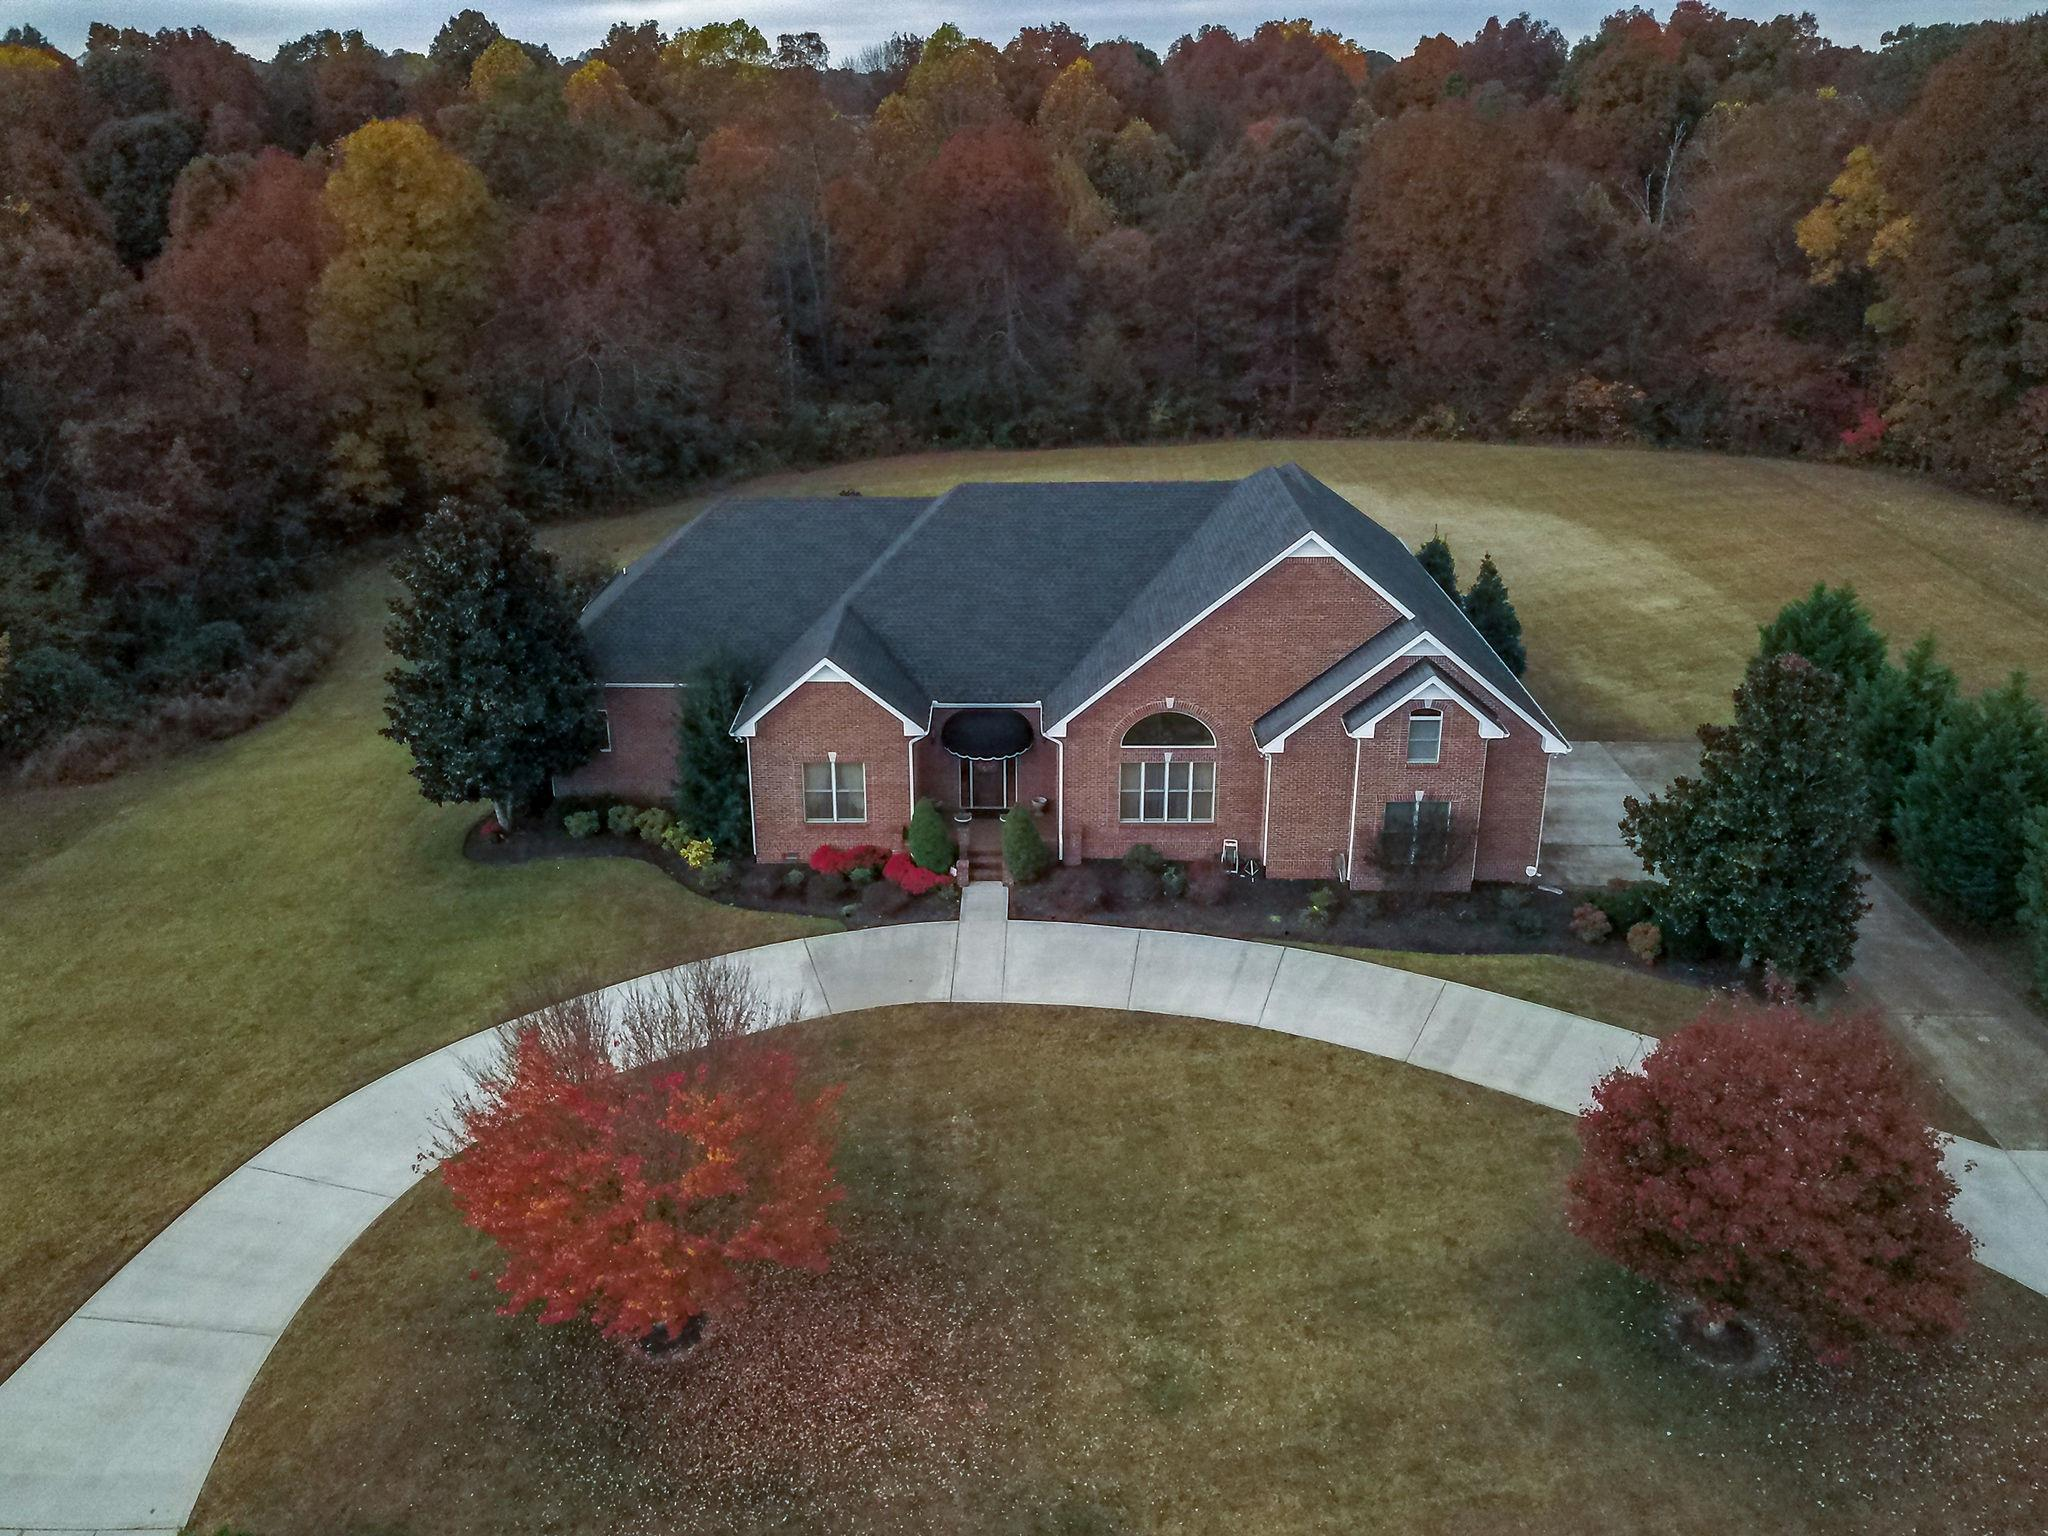 4144 Ironwood Dr, Greenbrier, TN 37073 - Greenbrier, TN real estate listing